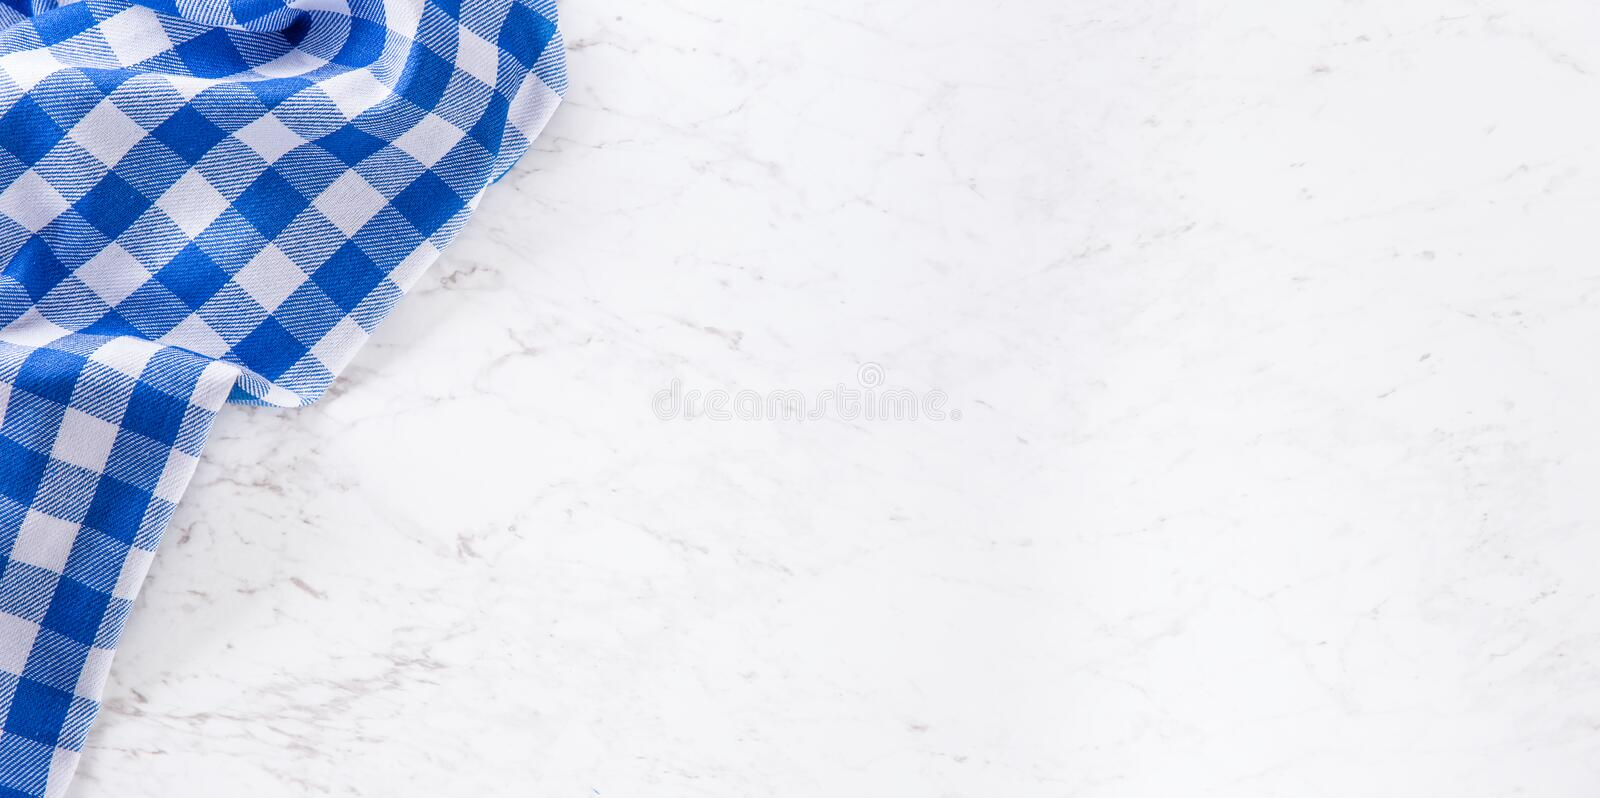 Top of view blue checkered tablecloth on white marble table royalty free stock photography